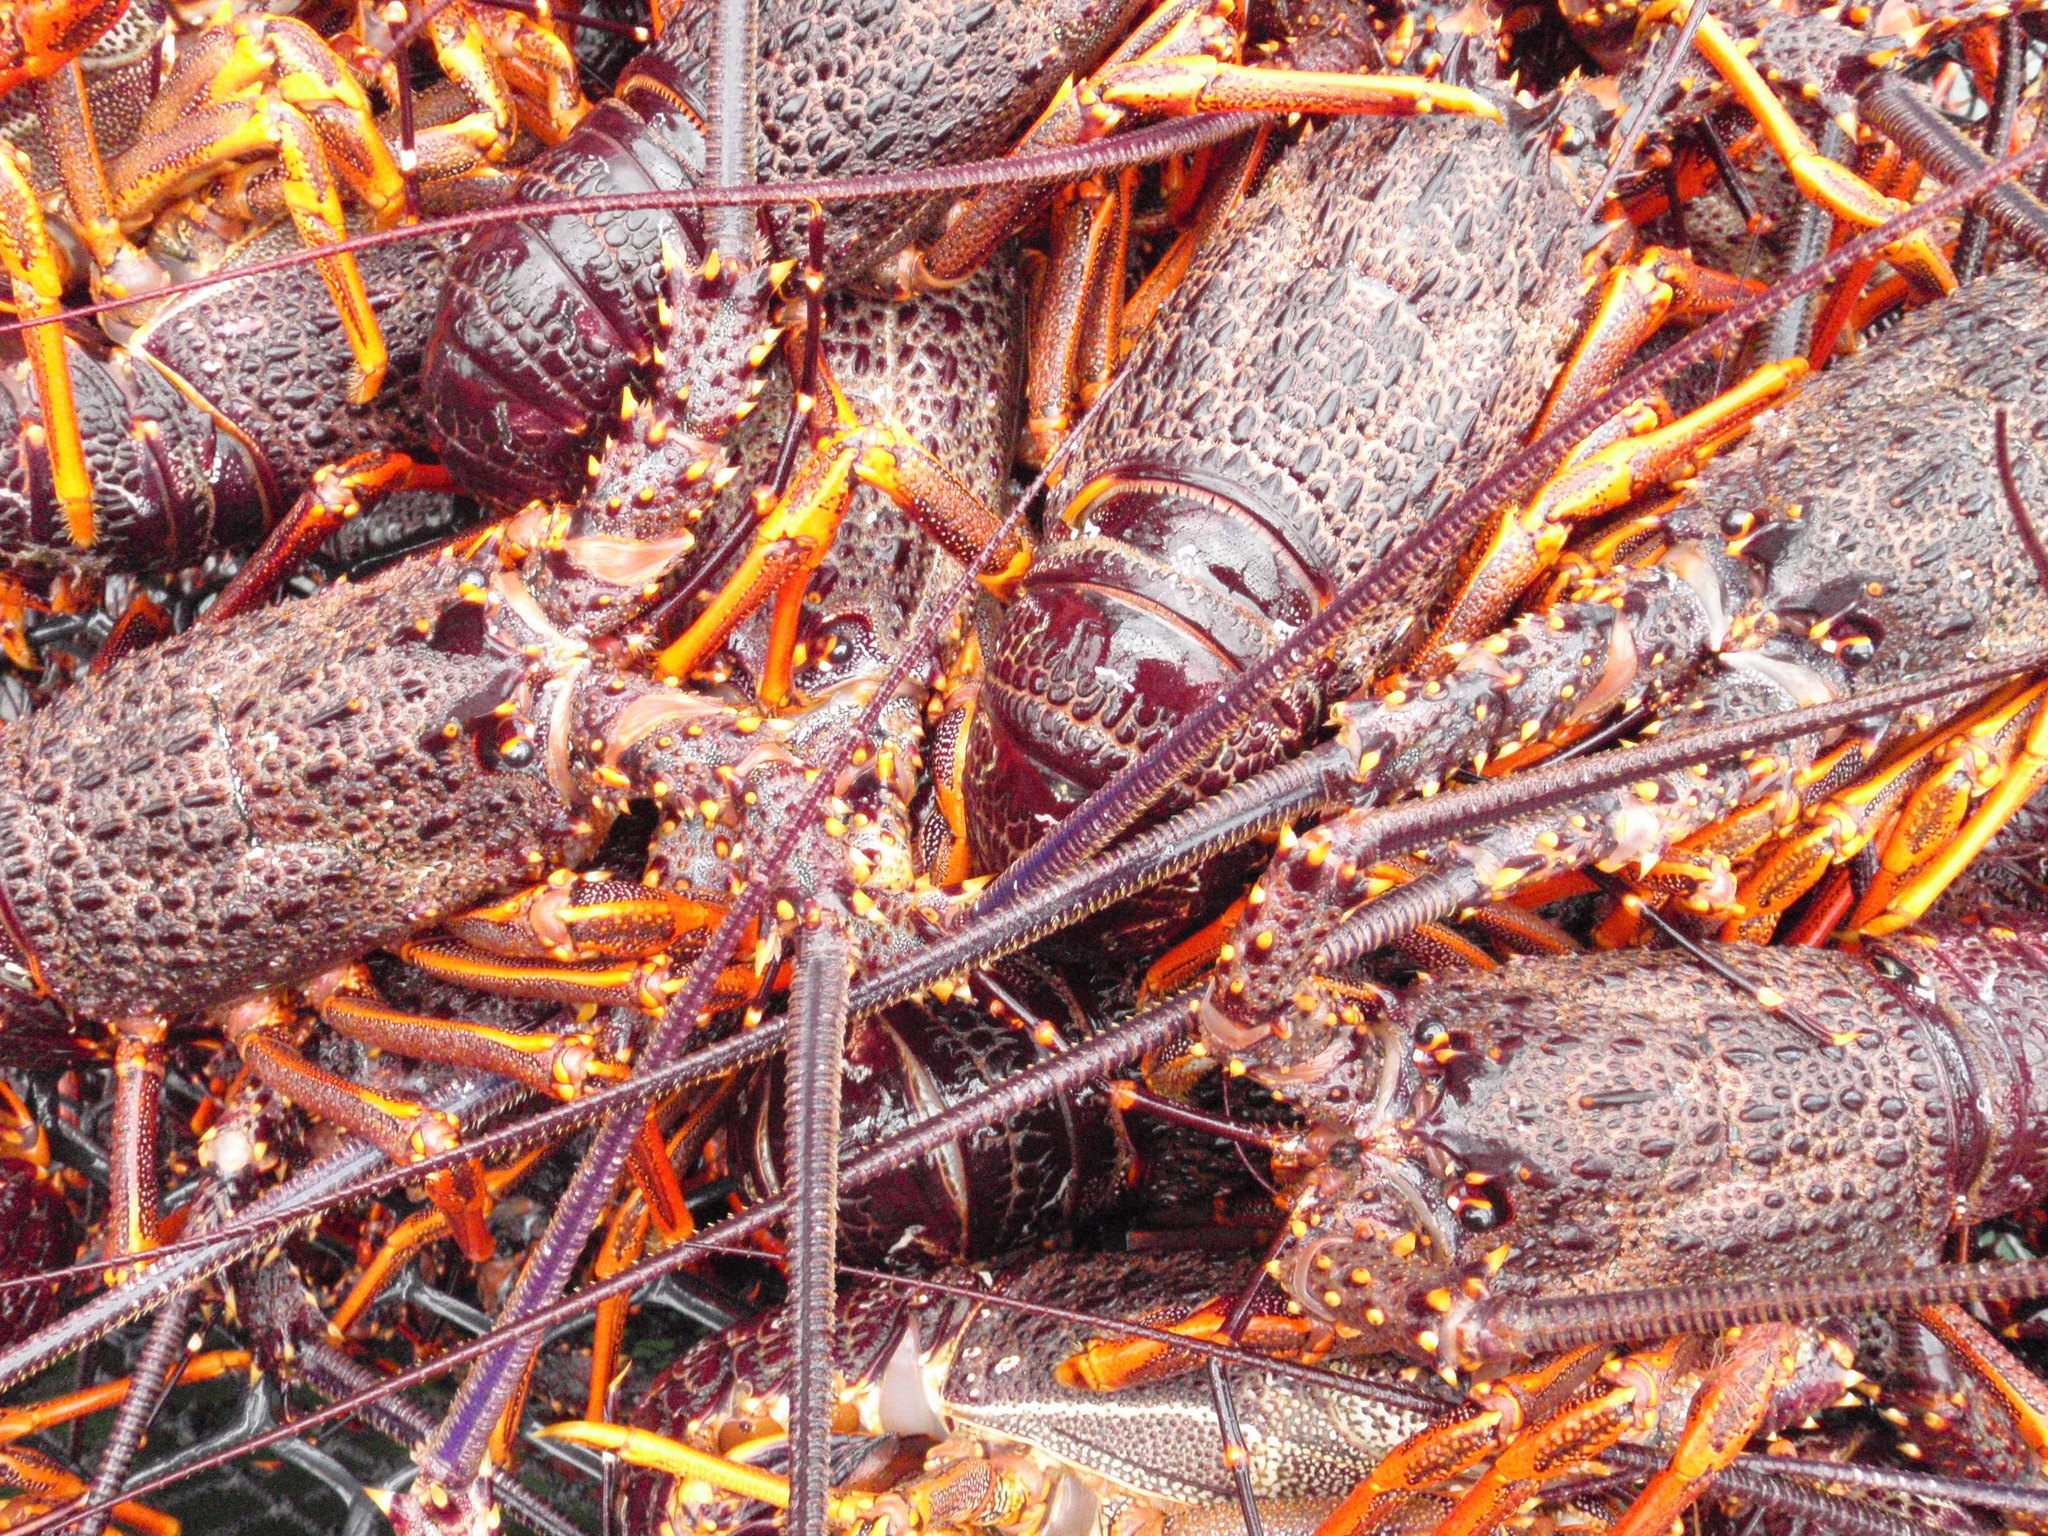 Image of Red Rock Lobster